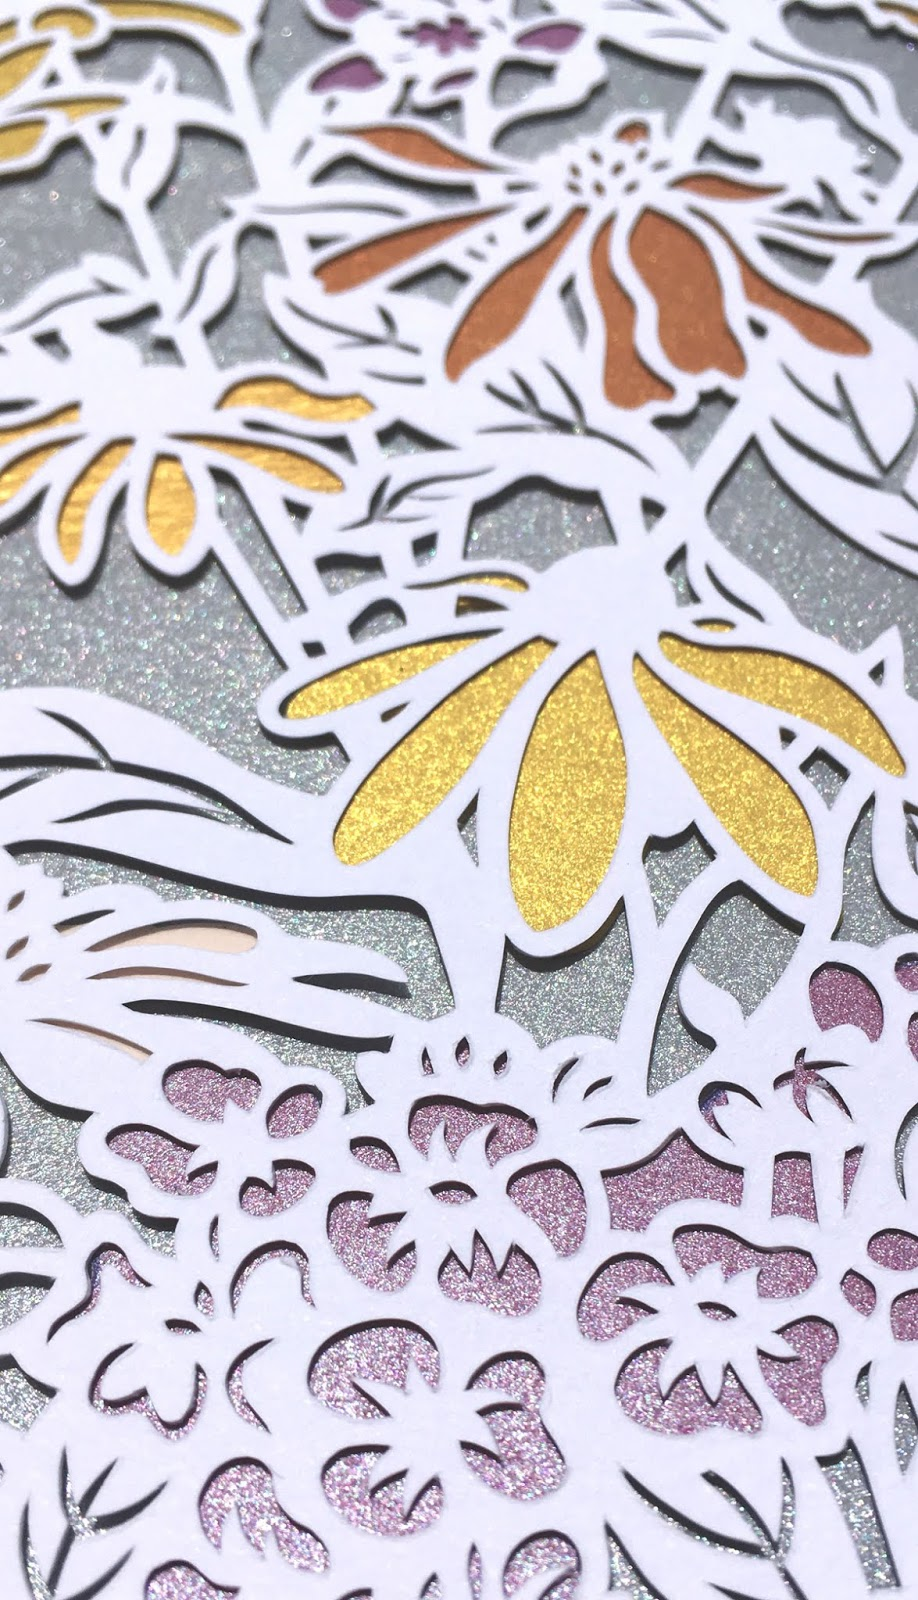 handmade papercut art for wedding by Naomi Shiek